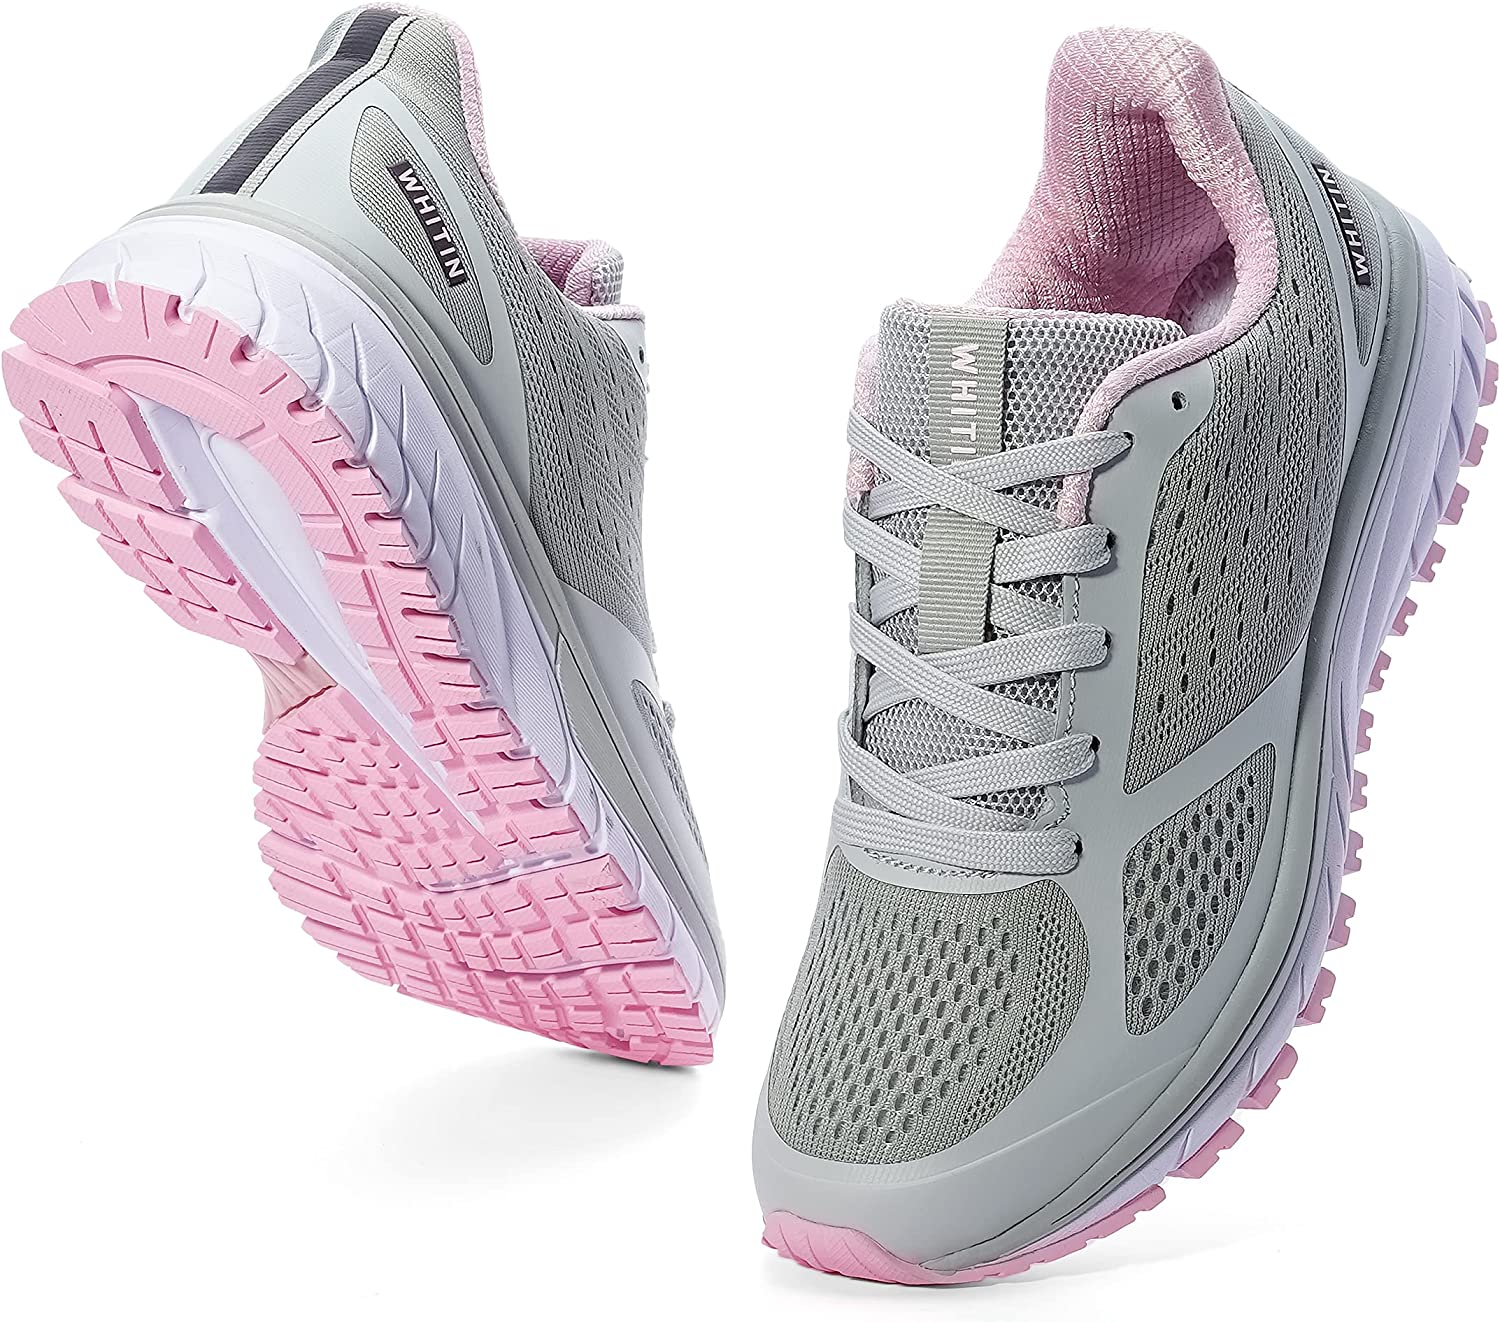 WHITIN Women's Running Shoes Walking Sneakers New arrival Breathable free shipping